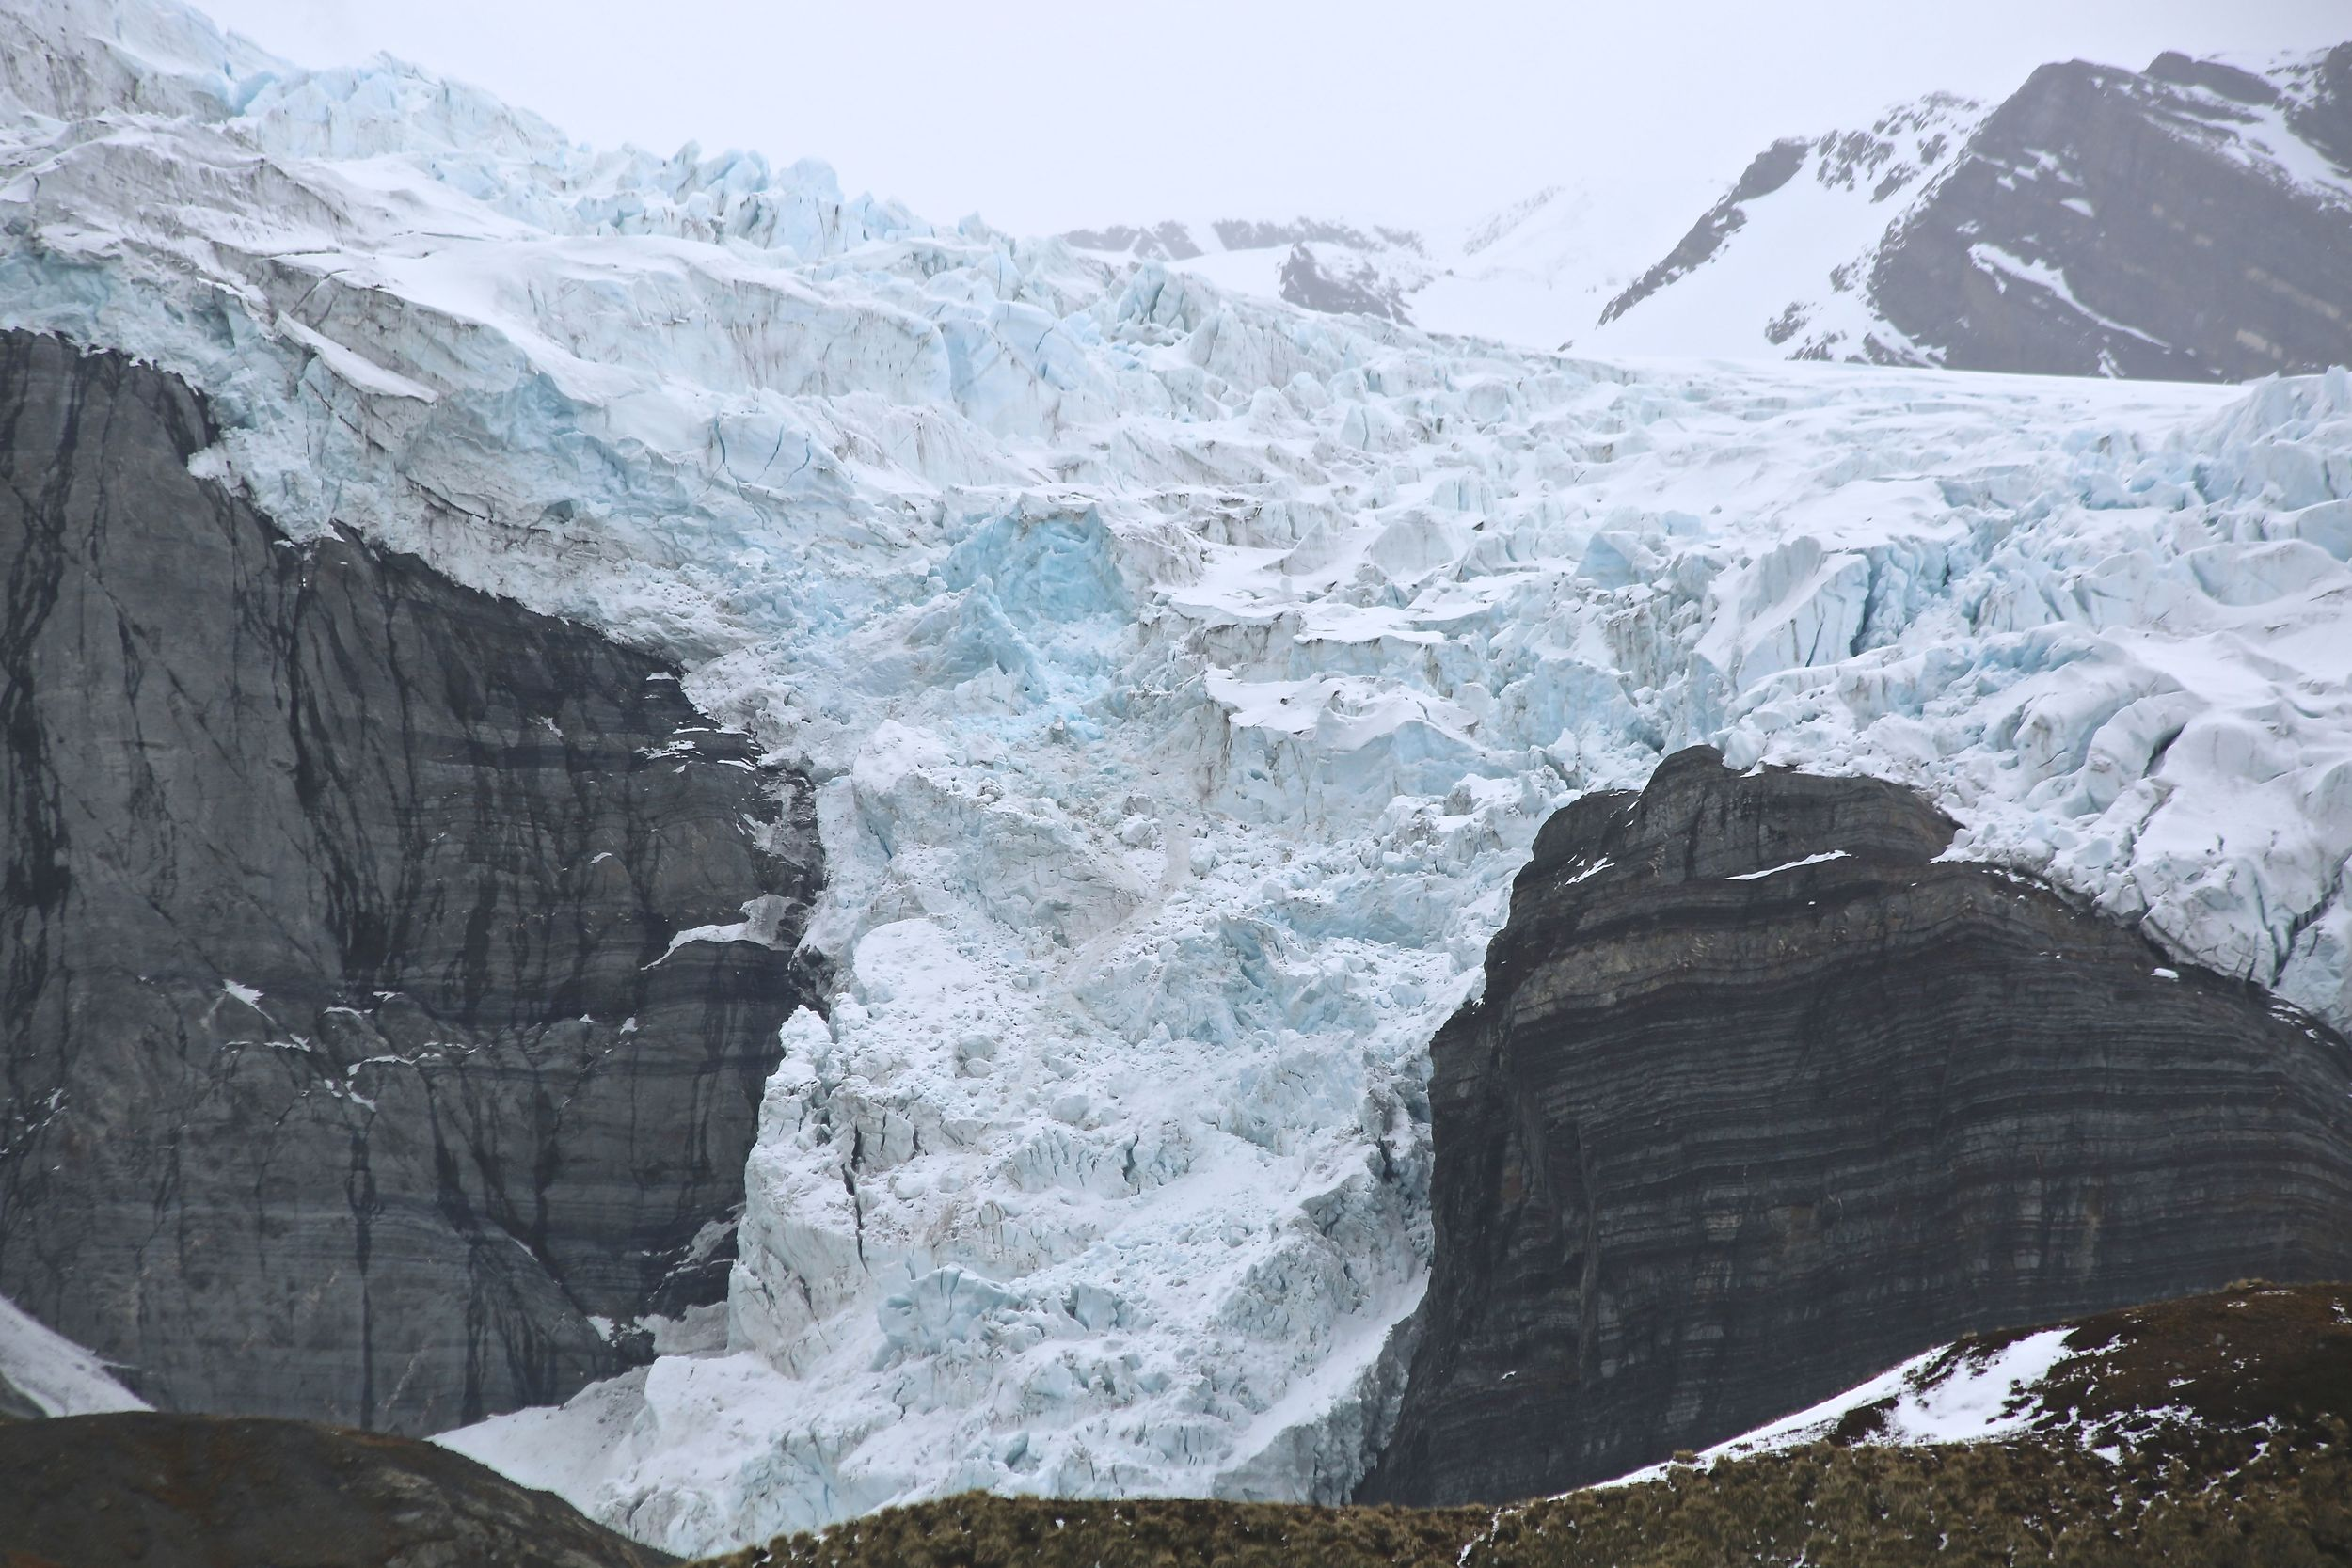 Here's a closer look at the awesome mass of ice and snow and its hint of glowing blue. The well-defined rock strata bespeak South Georgia Island's deep geologic history.